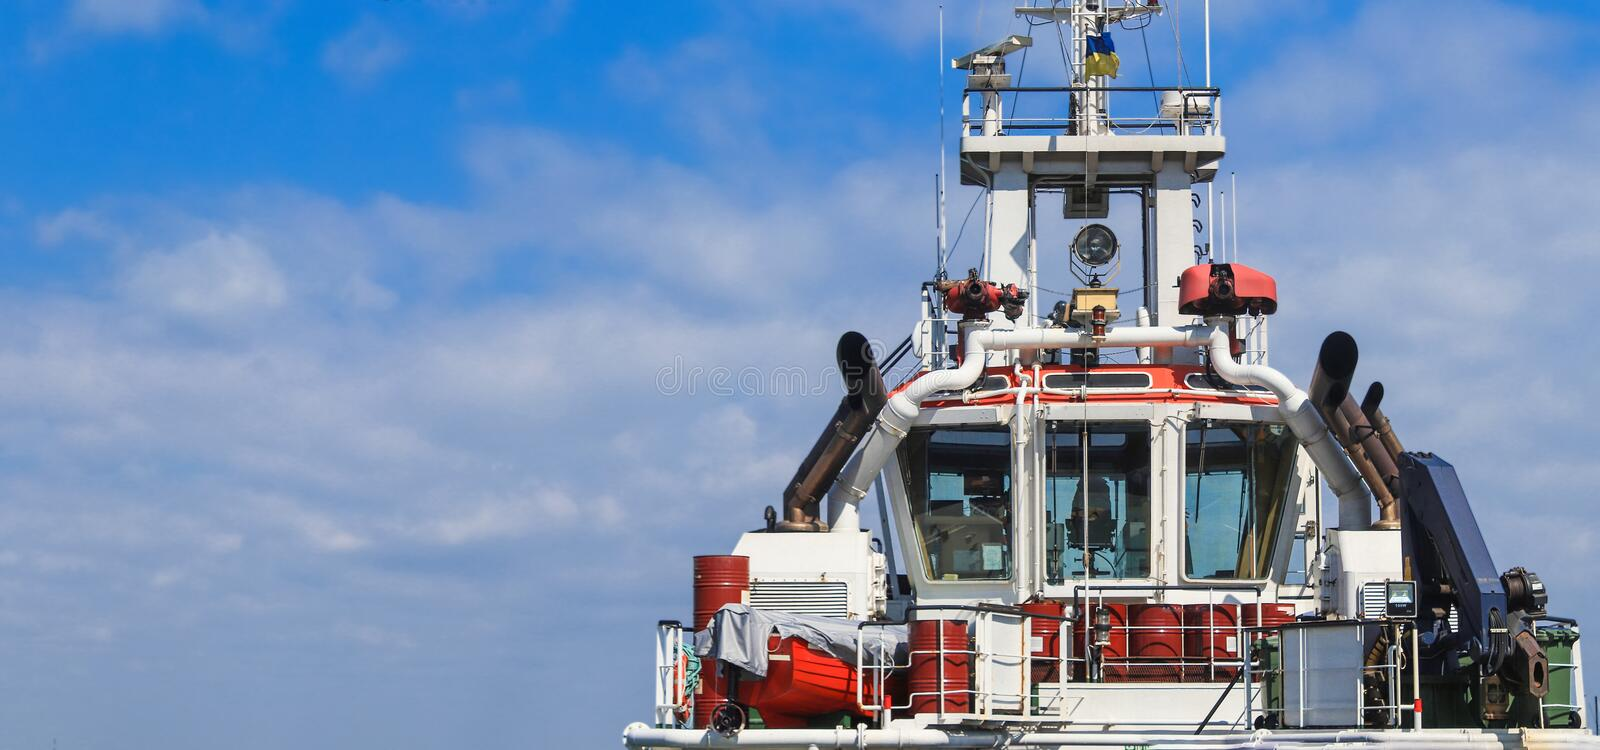 Captain`s bridge on the ship. Tug is at the pier in the sea port. Panoramic view royalty free stock photos